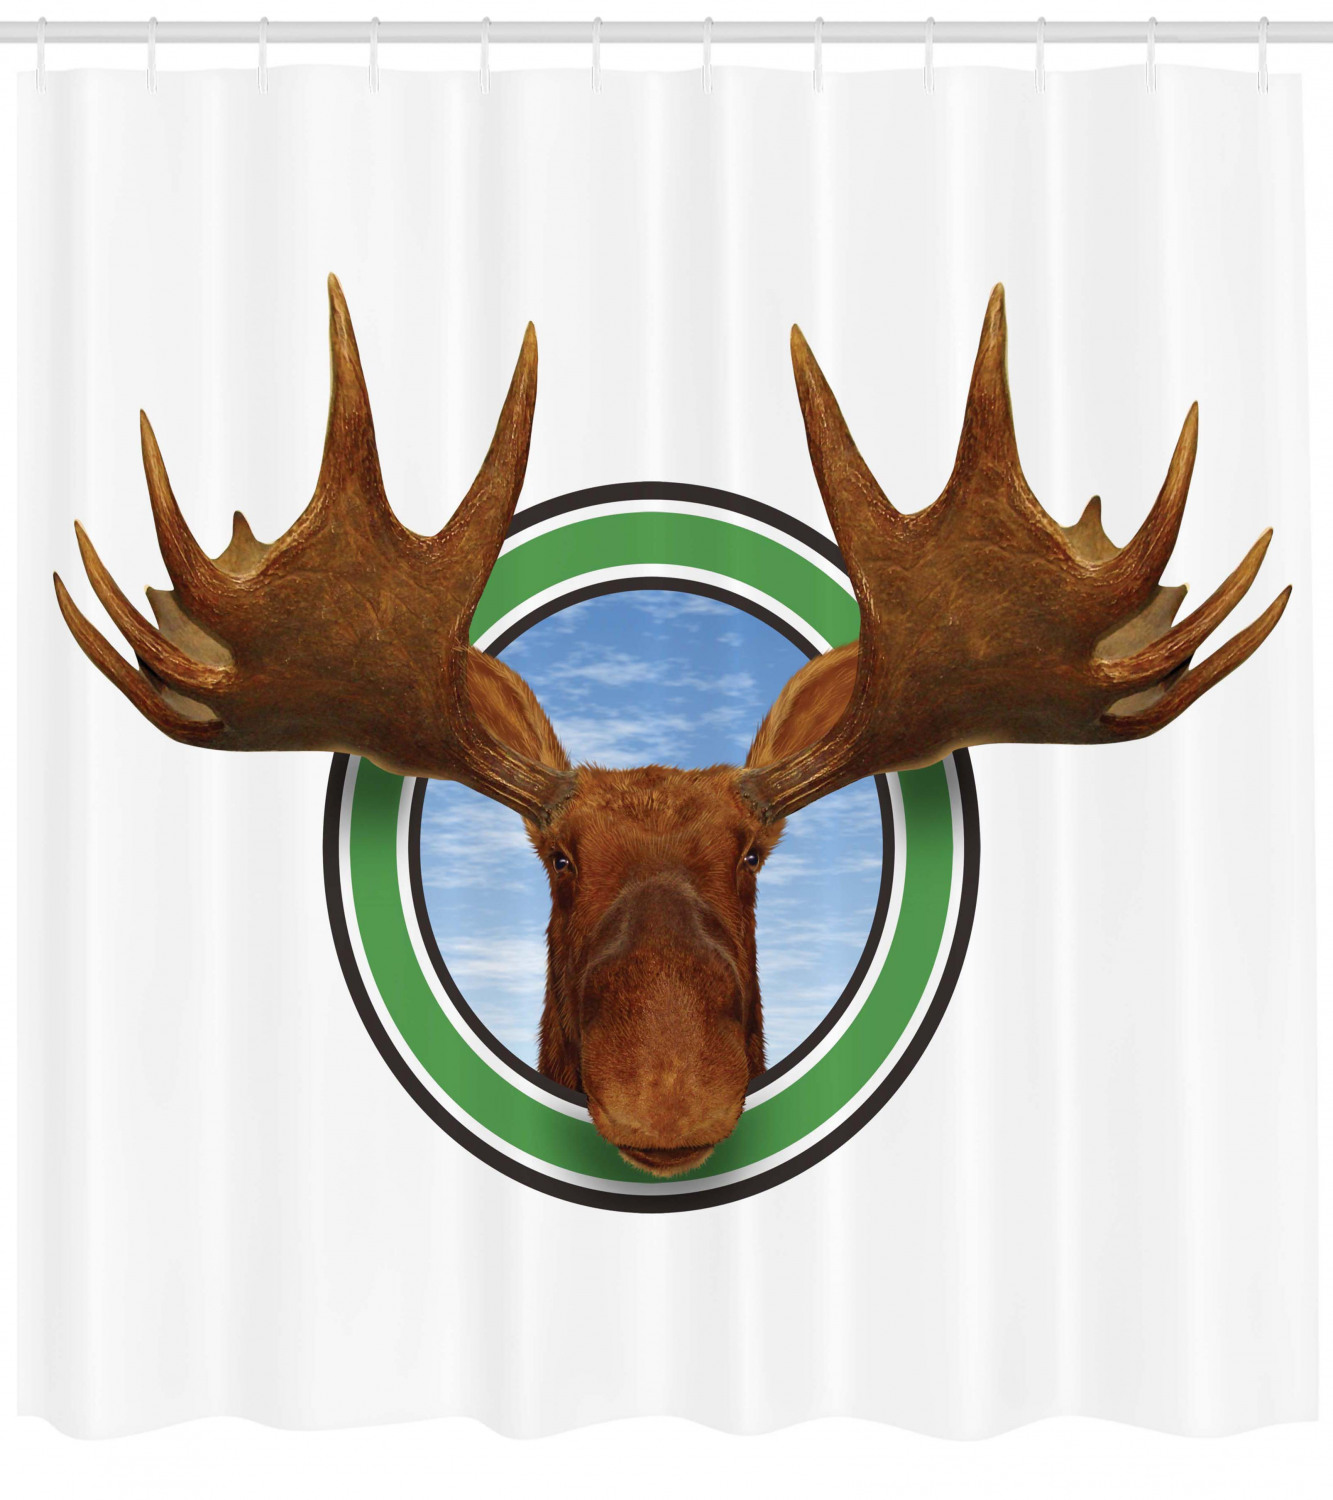 Moose Decor Shower Curtain Symbolic Northern Fauna Icon With Deer Head Humor Natural Preservation Image Fabric Bathroom Set Hooks 69w X 75l